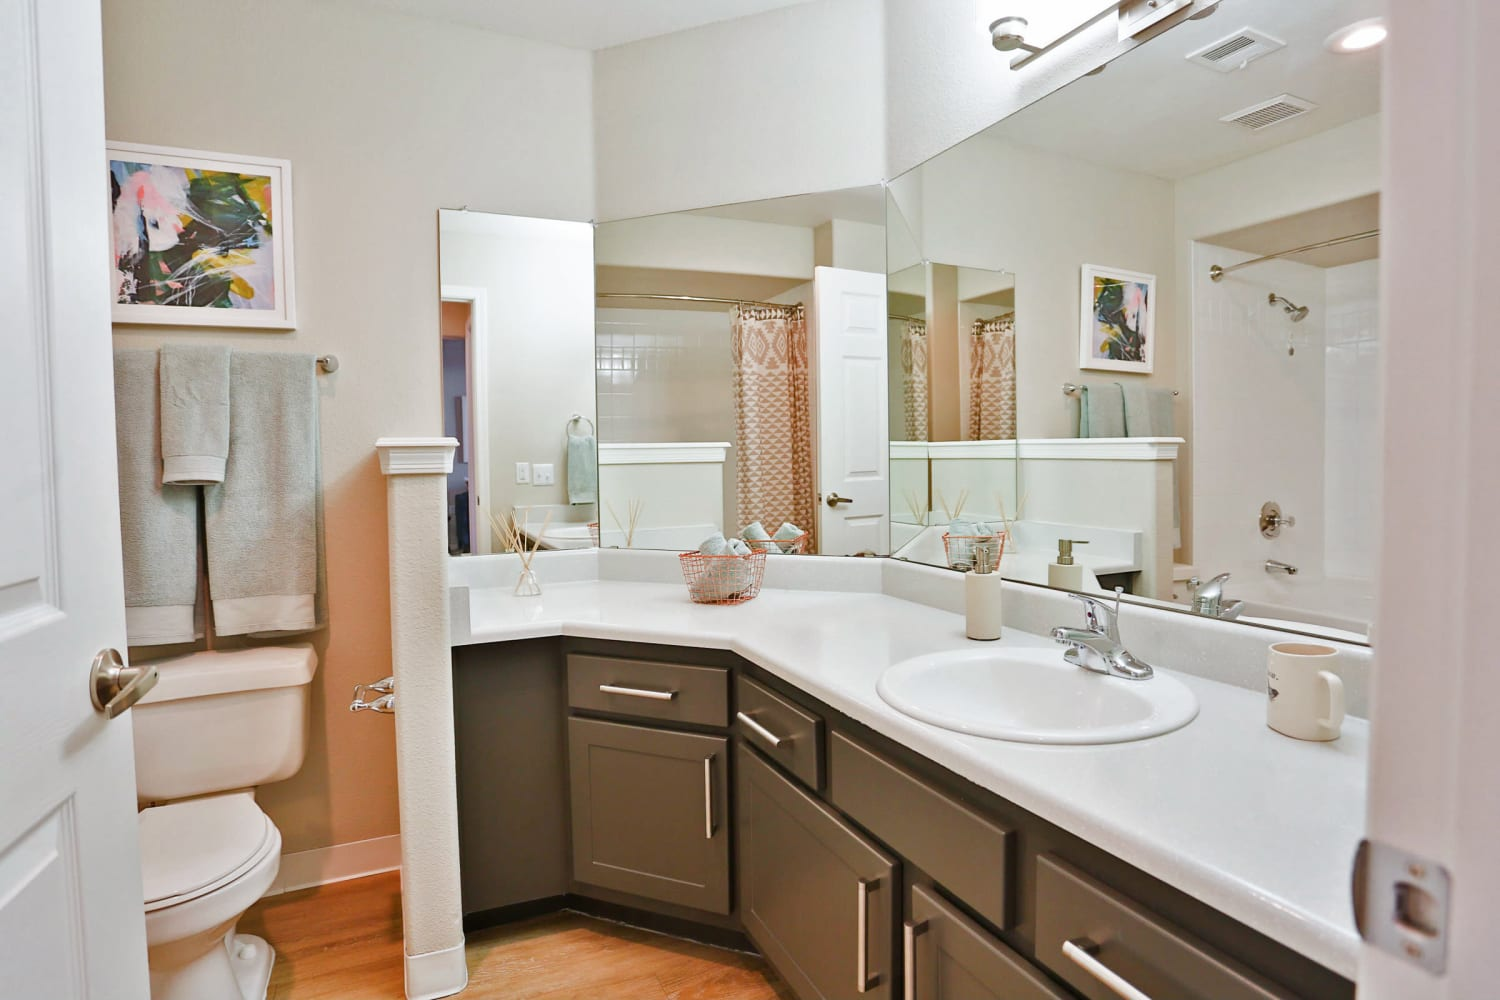 Enjoy plenty of counter space in the bathrooms at Sonoran Vista Apartments in Scottsdale, Arizona